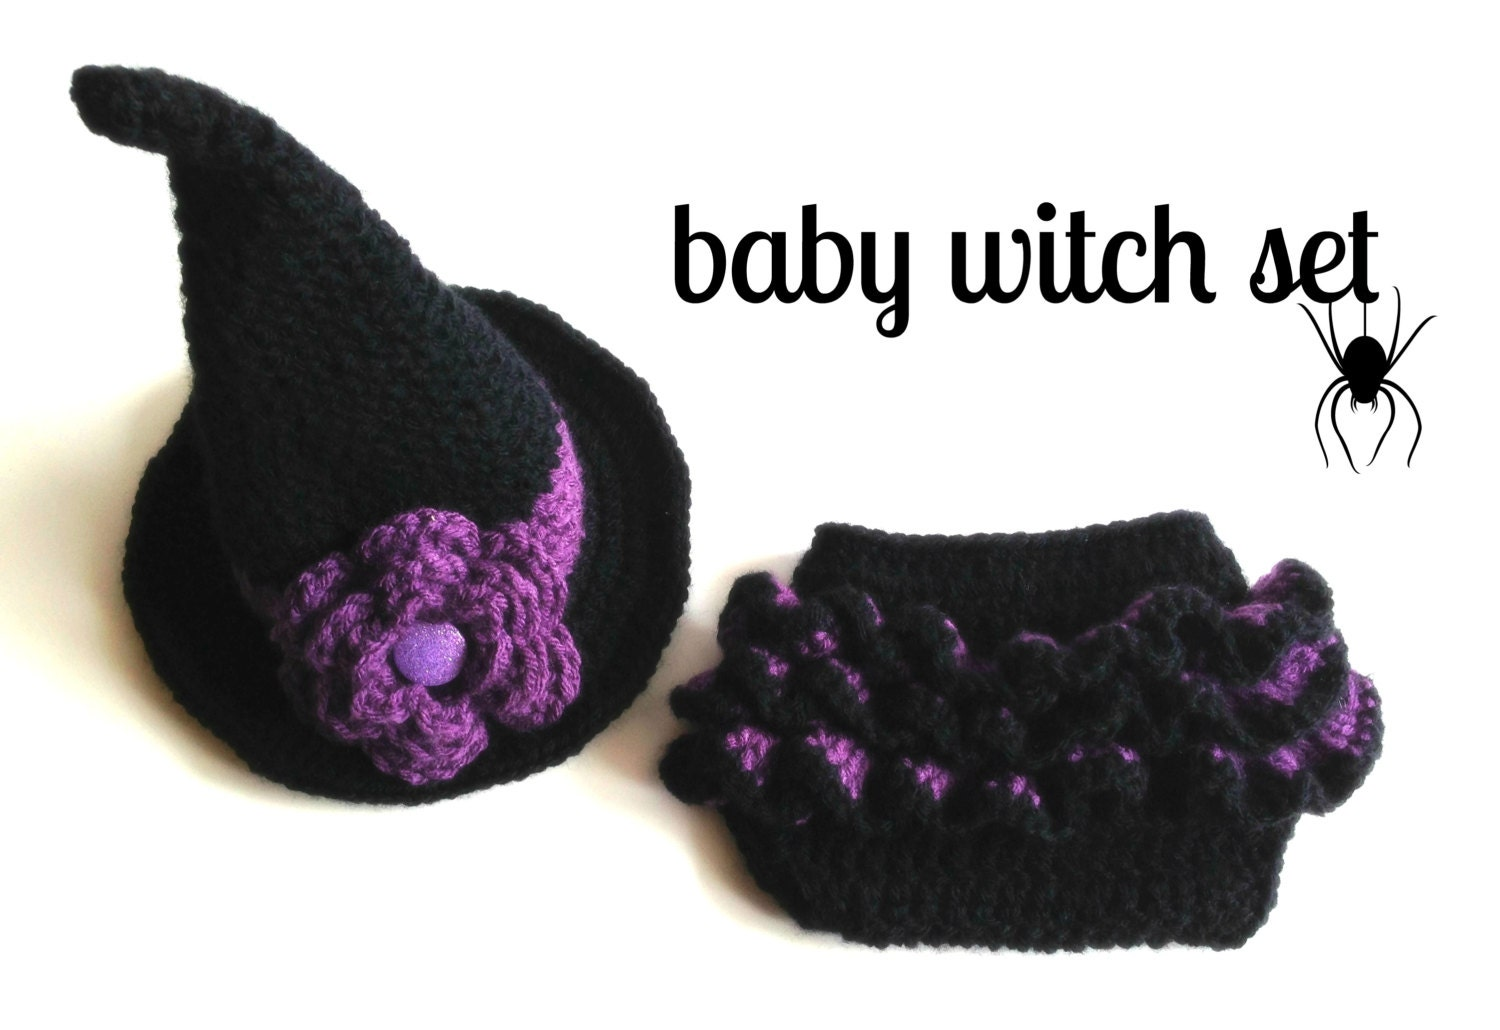 Crochet Pattern For Baby Witch Hat : Crochet Baby Witch Hat & Diaper Cover Set Photo by ...